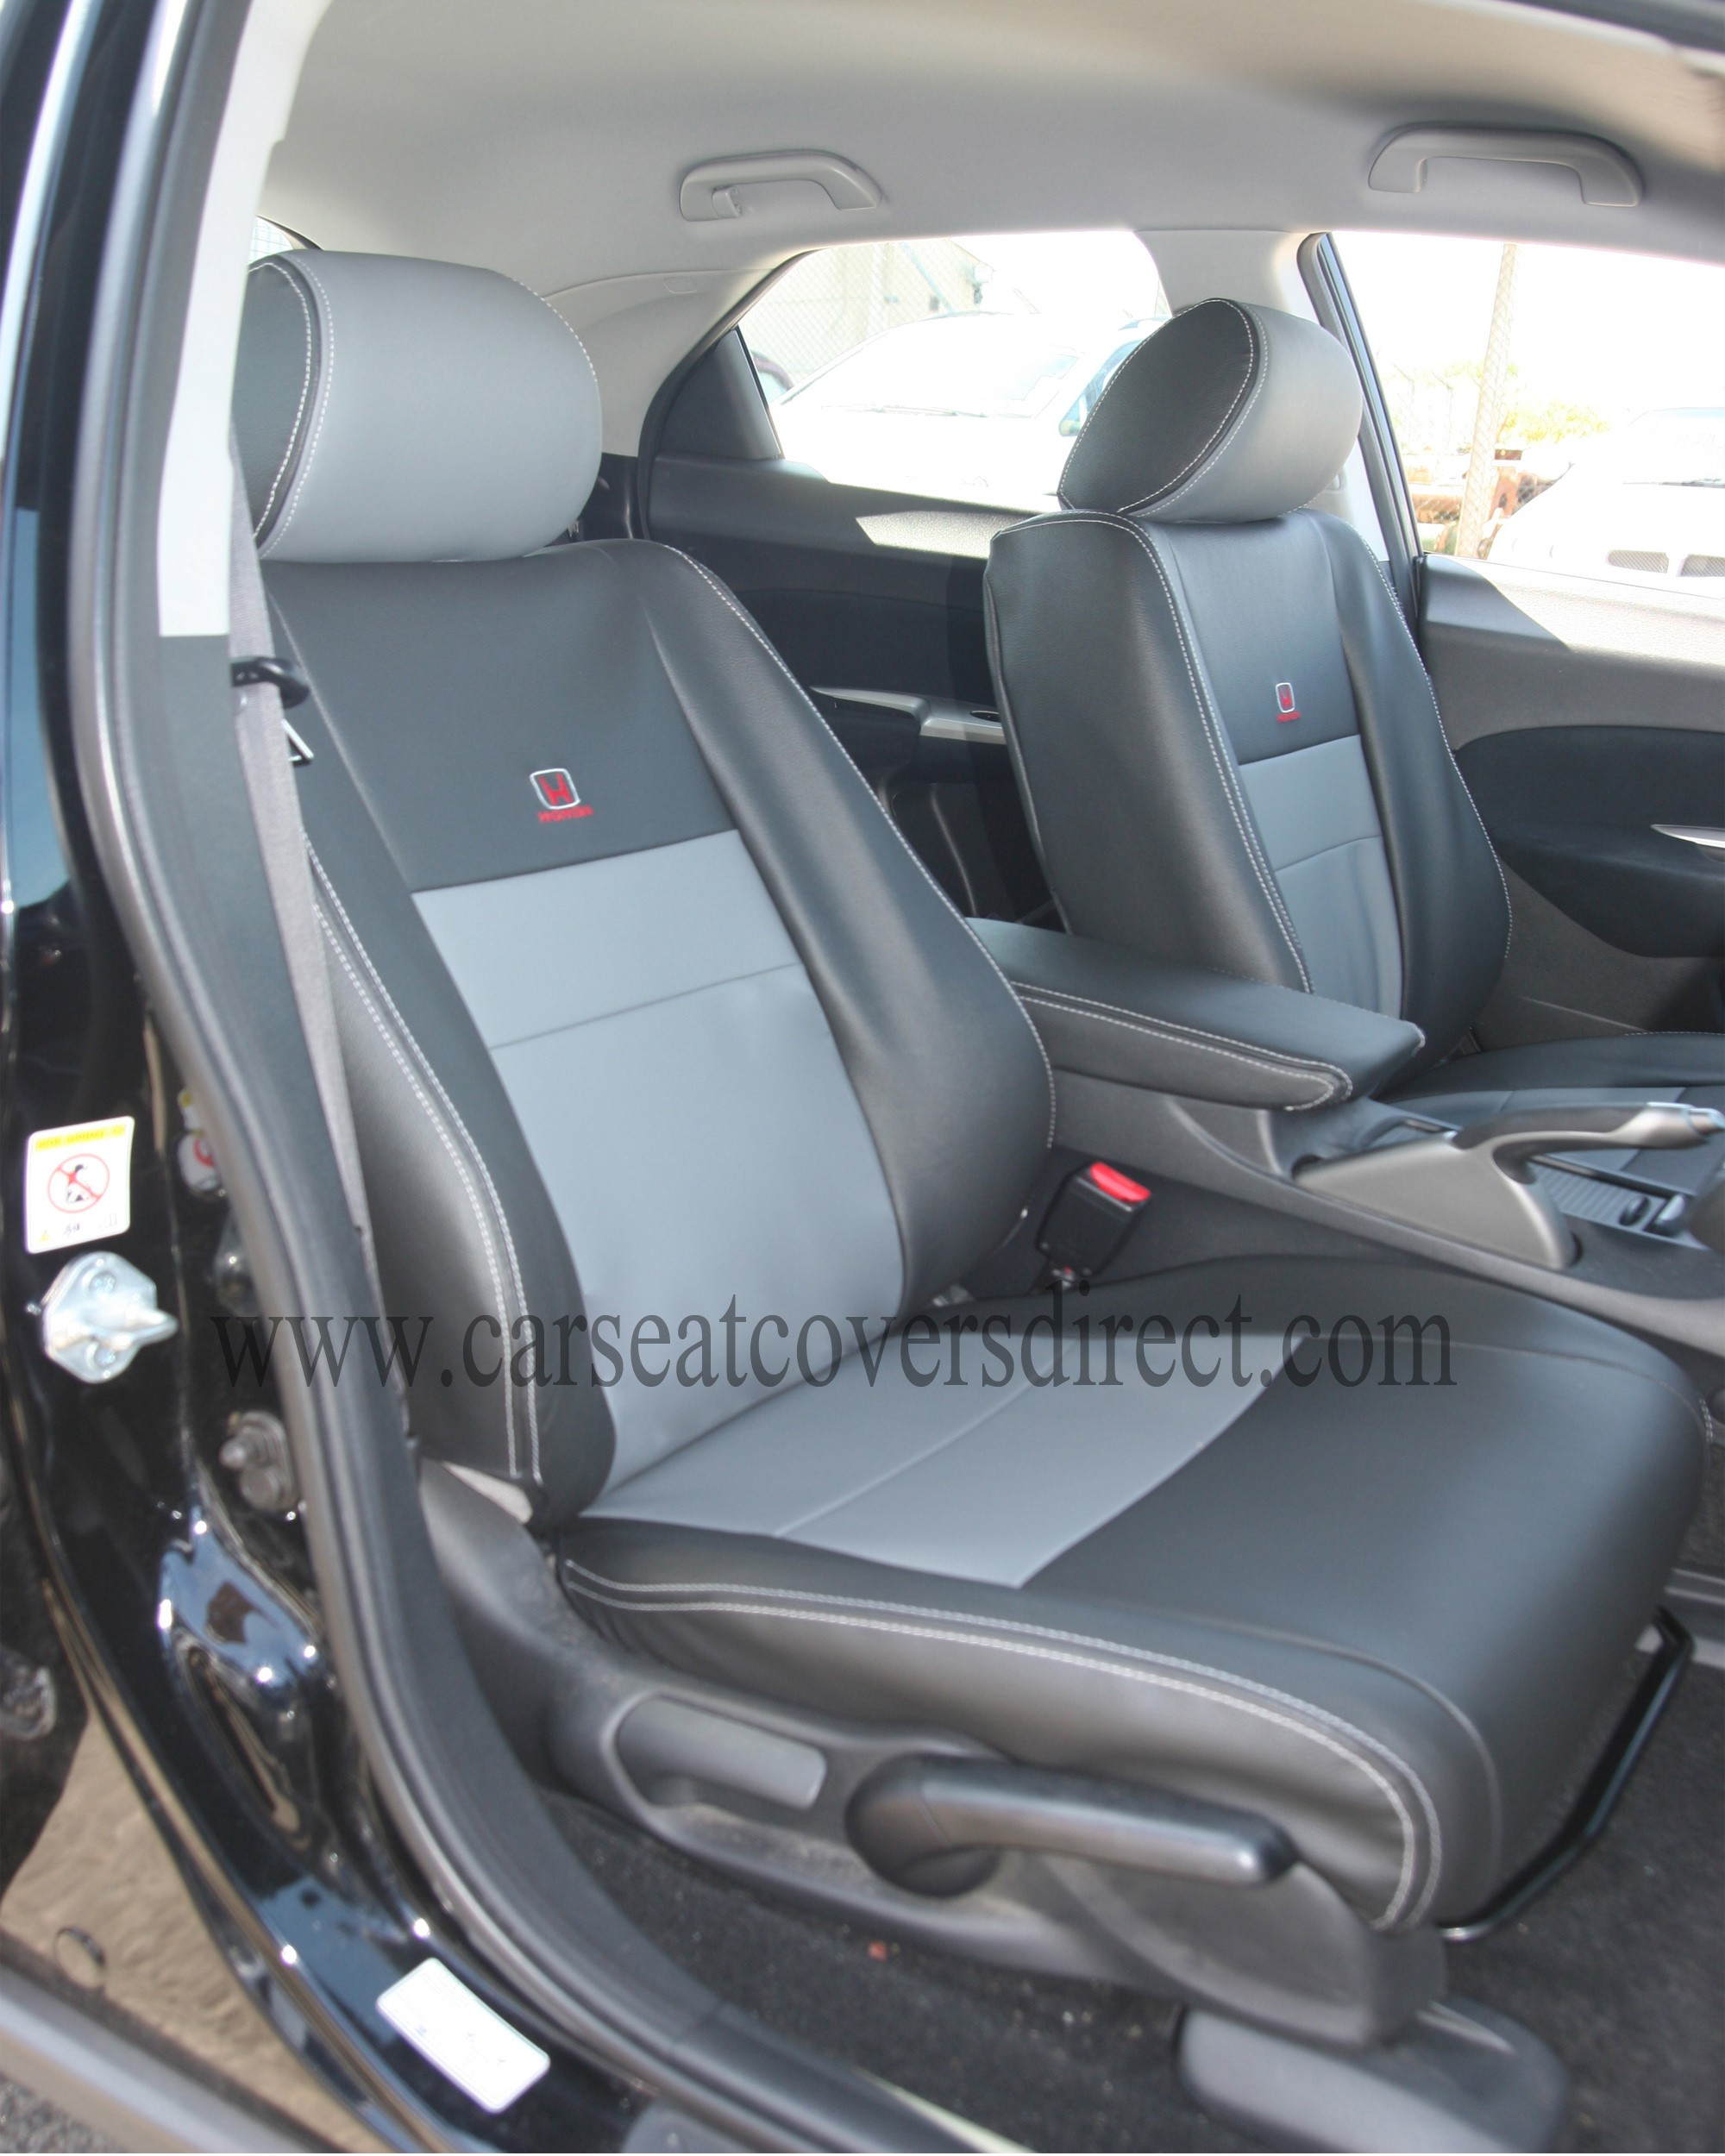 Search results for: 'honda' Car Seat Covers Direct - Tailored To Your Choice